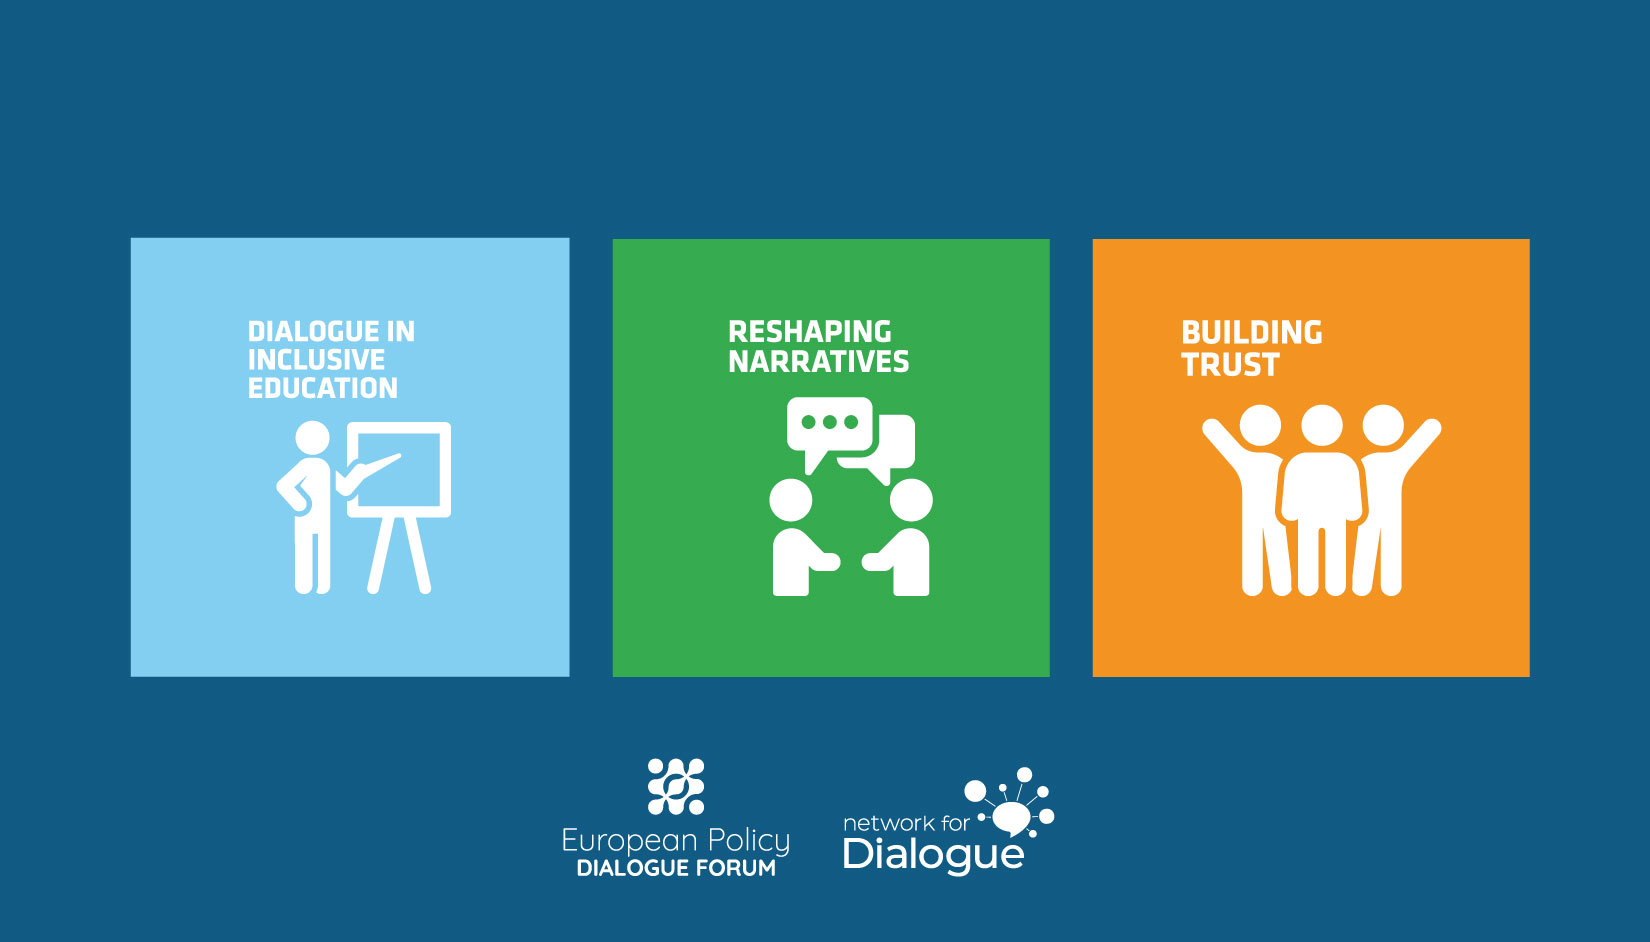 KAICIID-supported Network for Dialogue has published three policy briefs that discuss how to foster the social inclusion of refugees and migrants in Europe